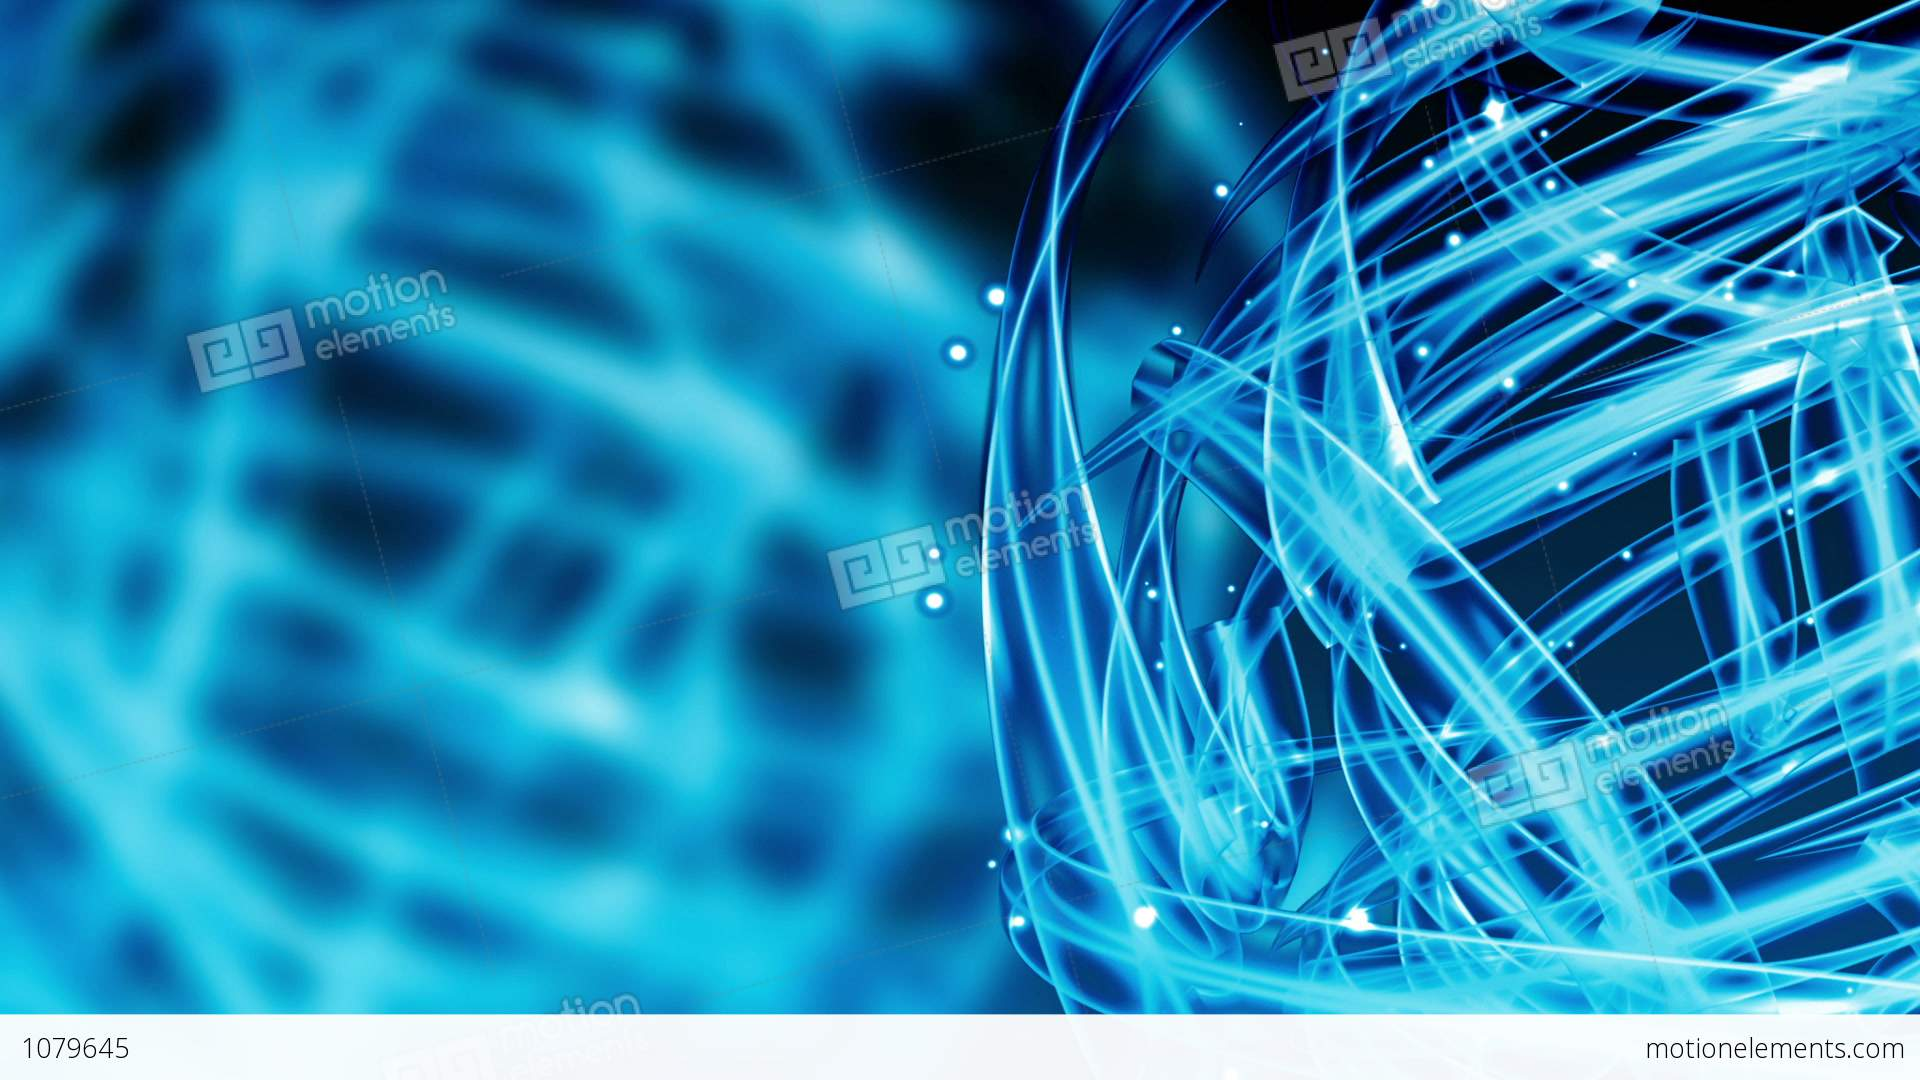 Blue cool light streaks abstract background 78 hd cg blue cool light streaks abstract background 78 hd voltagebd Images